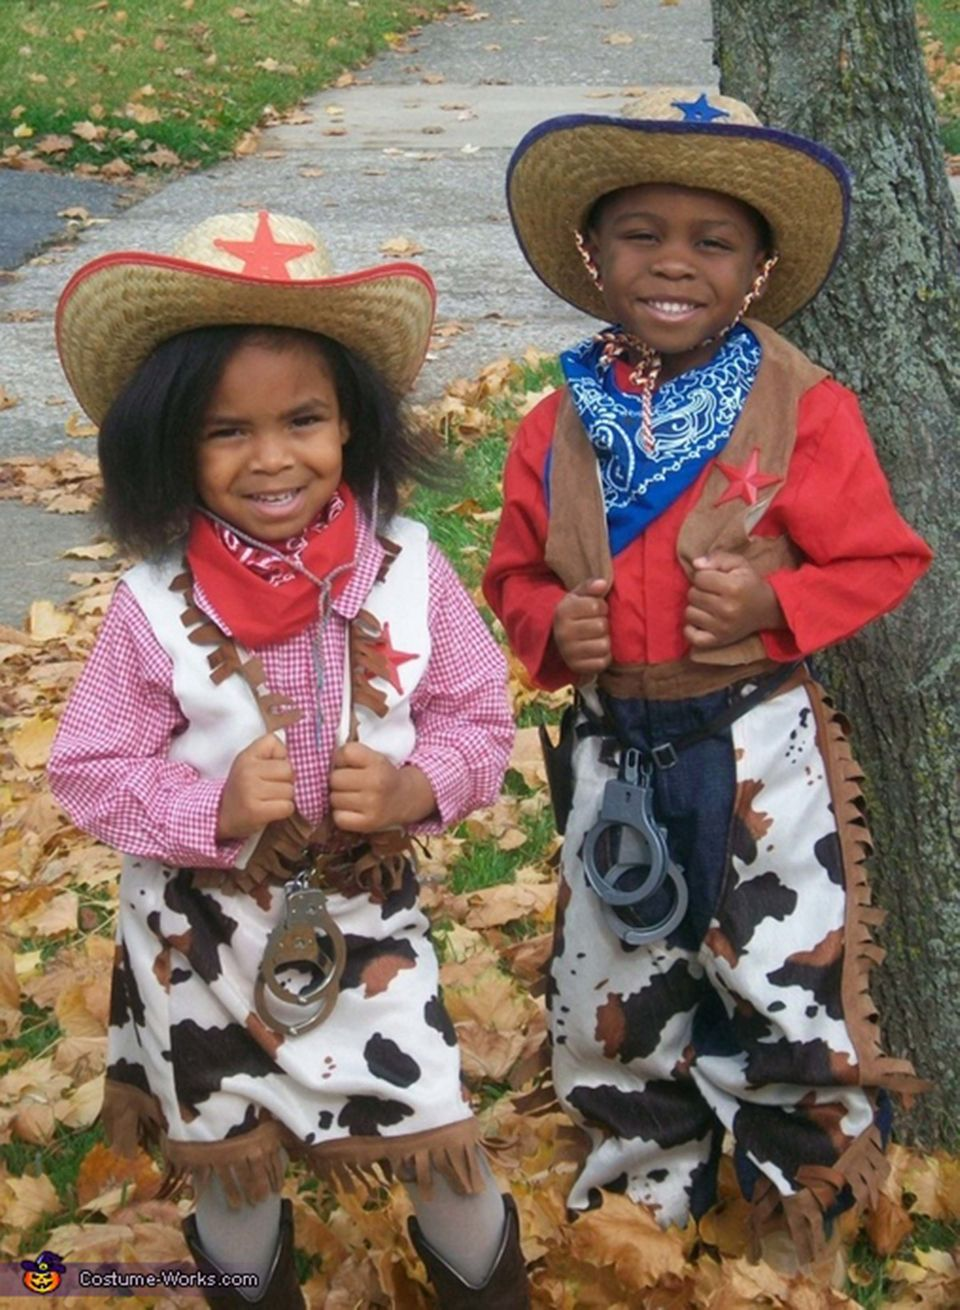 22 halloween costume for twins that are double the fun | huffpost life